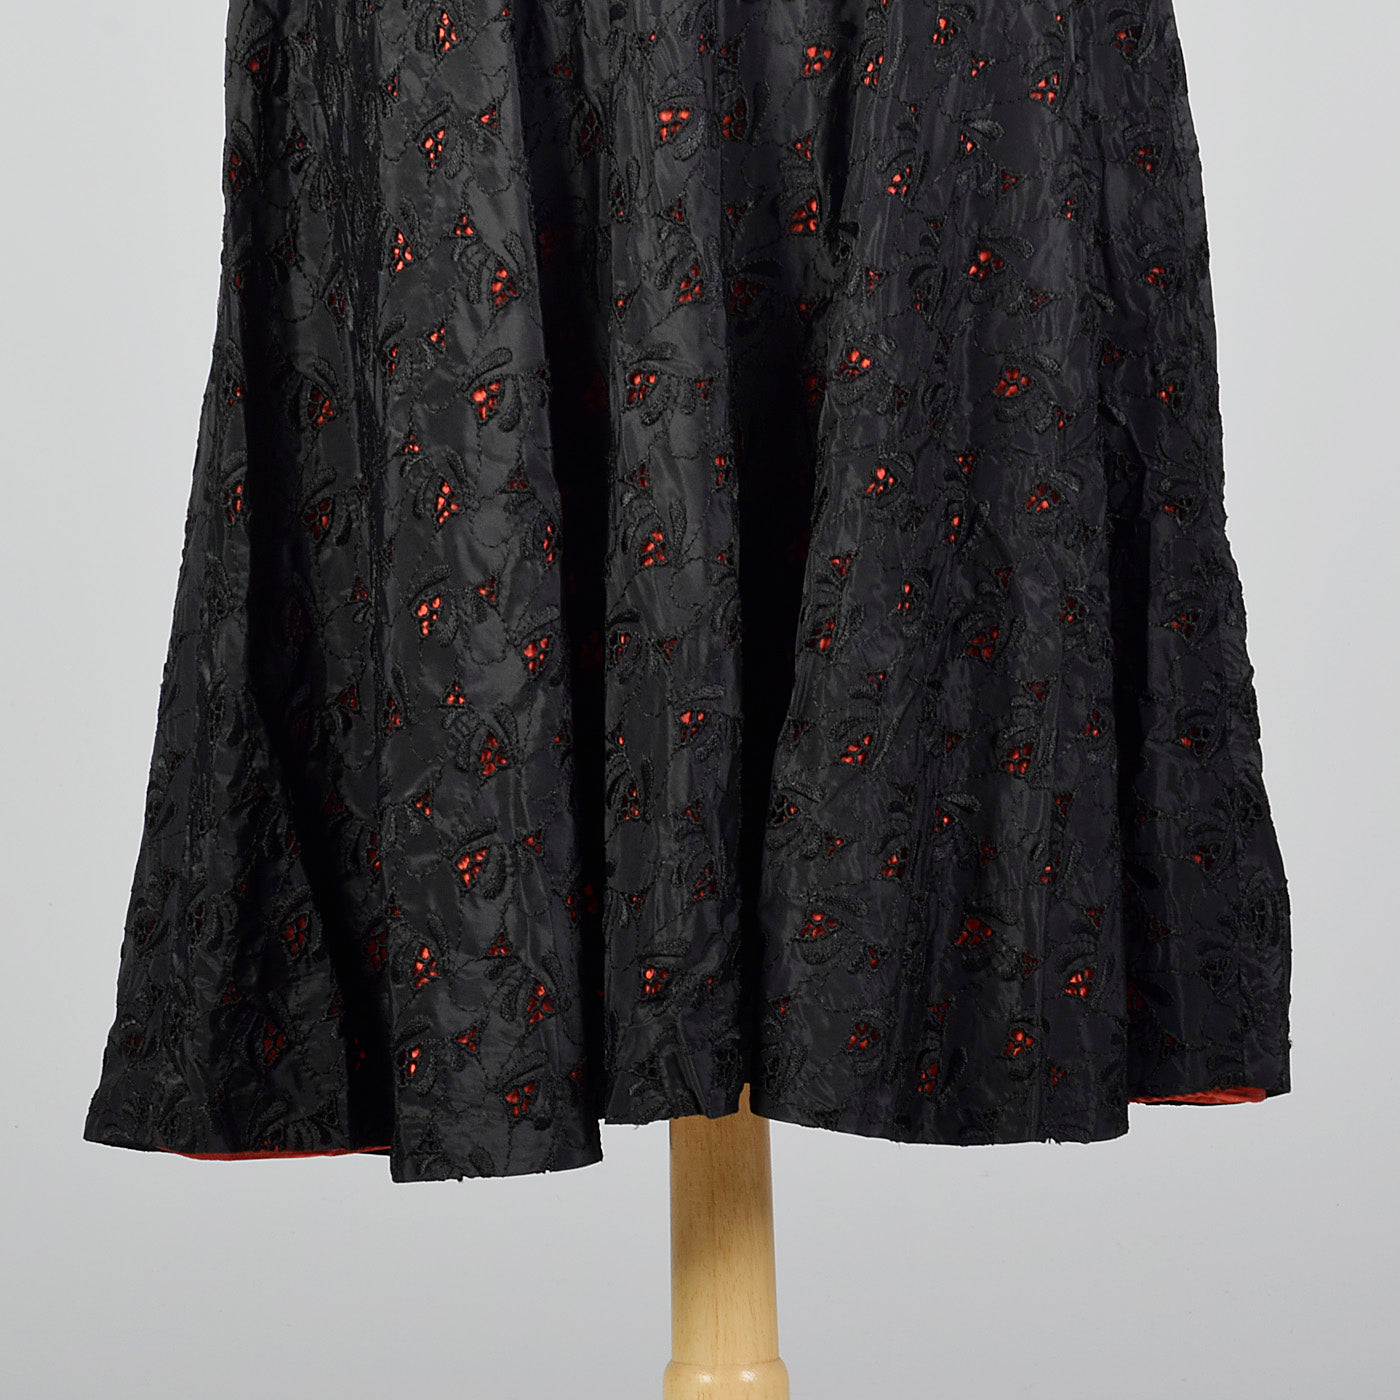 1950s Black Eyelet Dress with Red Lining